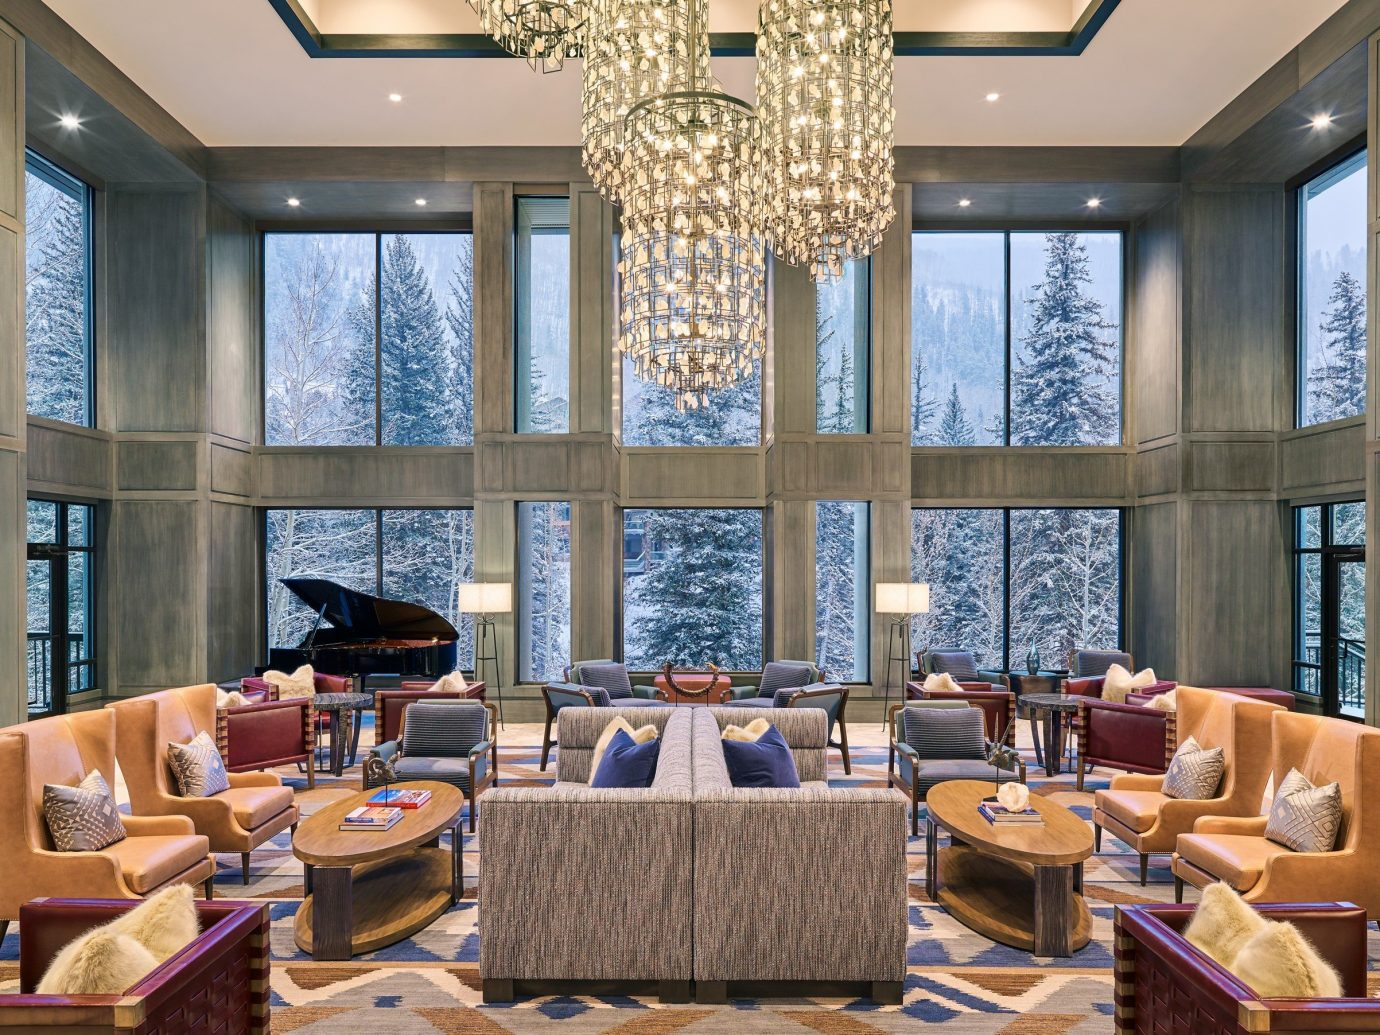 alpine skiing Mountains + Skiing Trip Ideas window indoor interior design living room ceiling Lobby furniture restaurant real estate daylighting